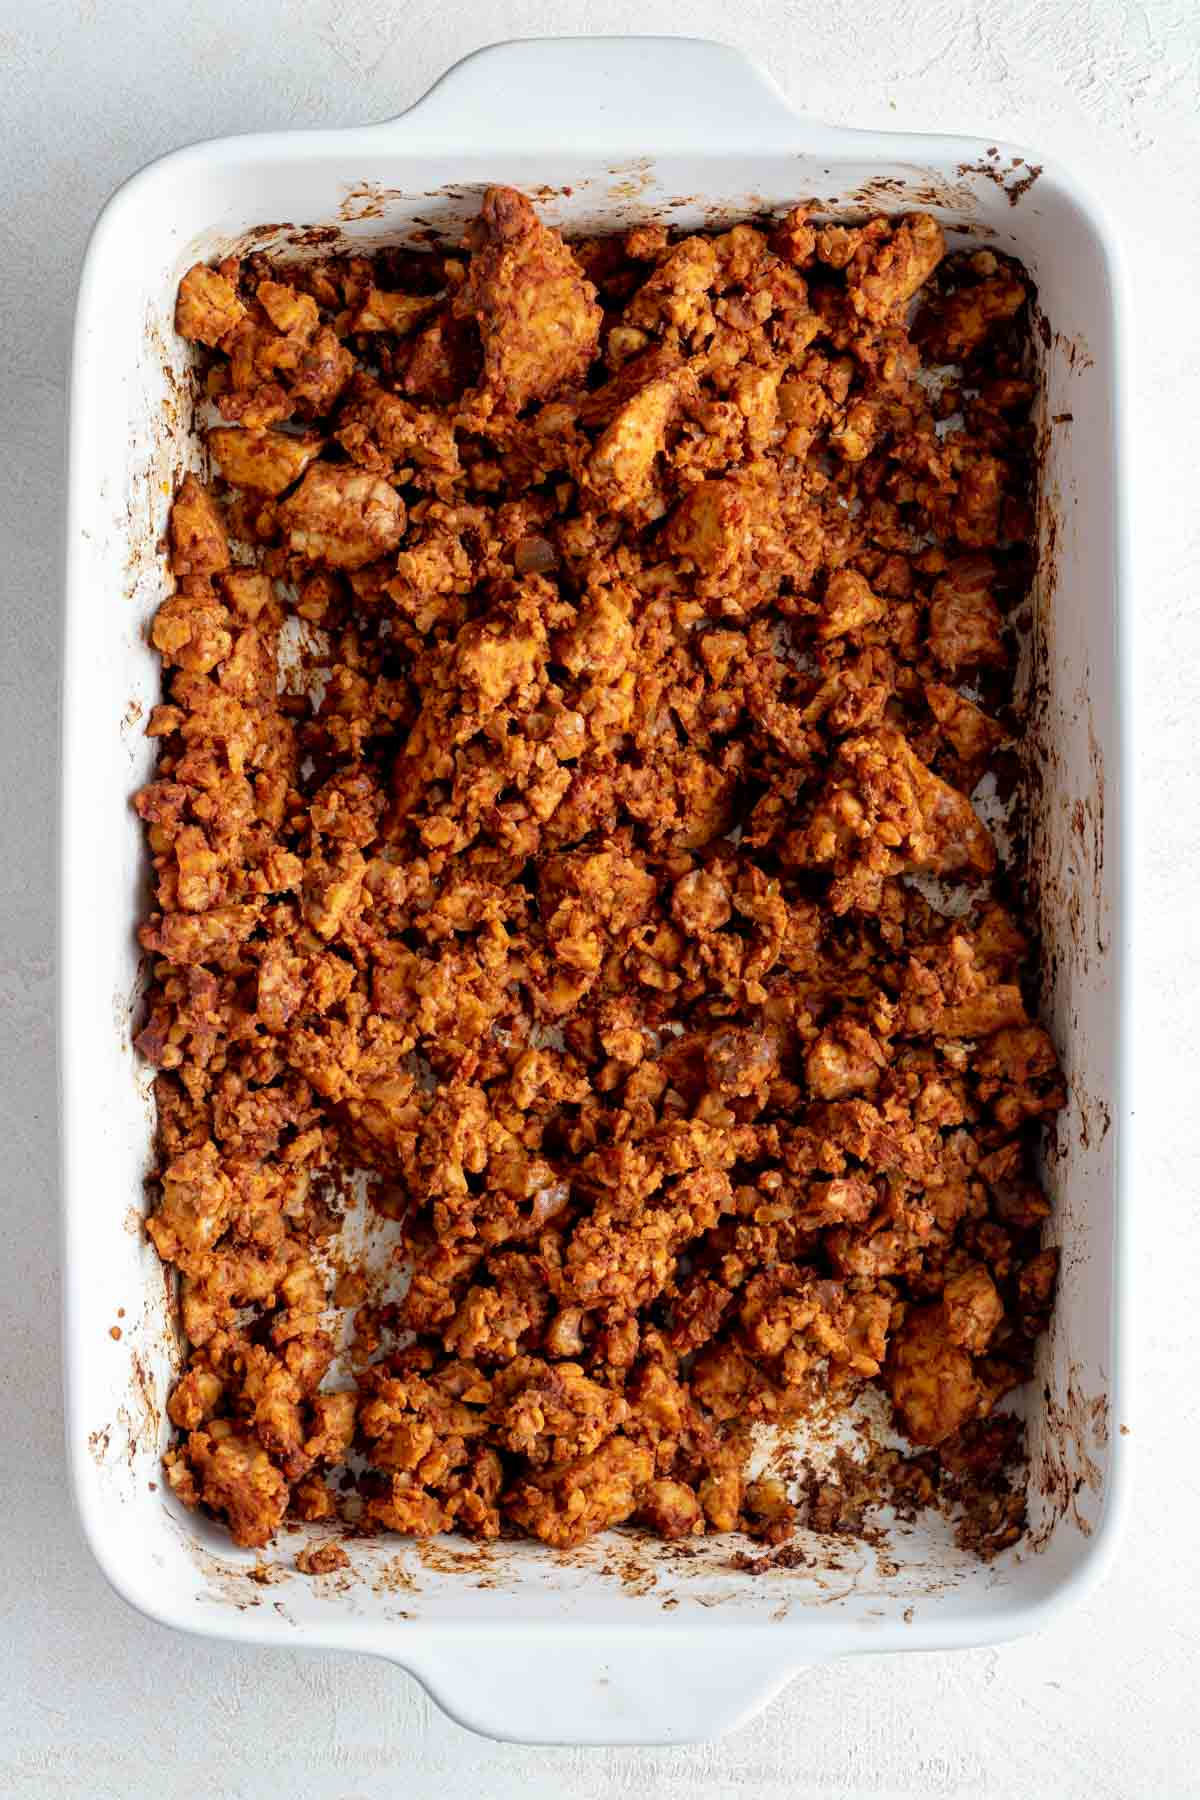 Baked taco meat in white casserole dish.